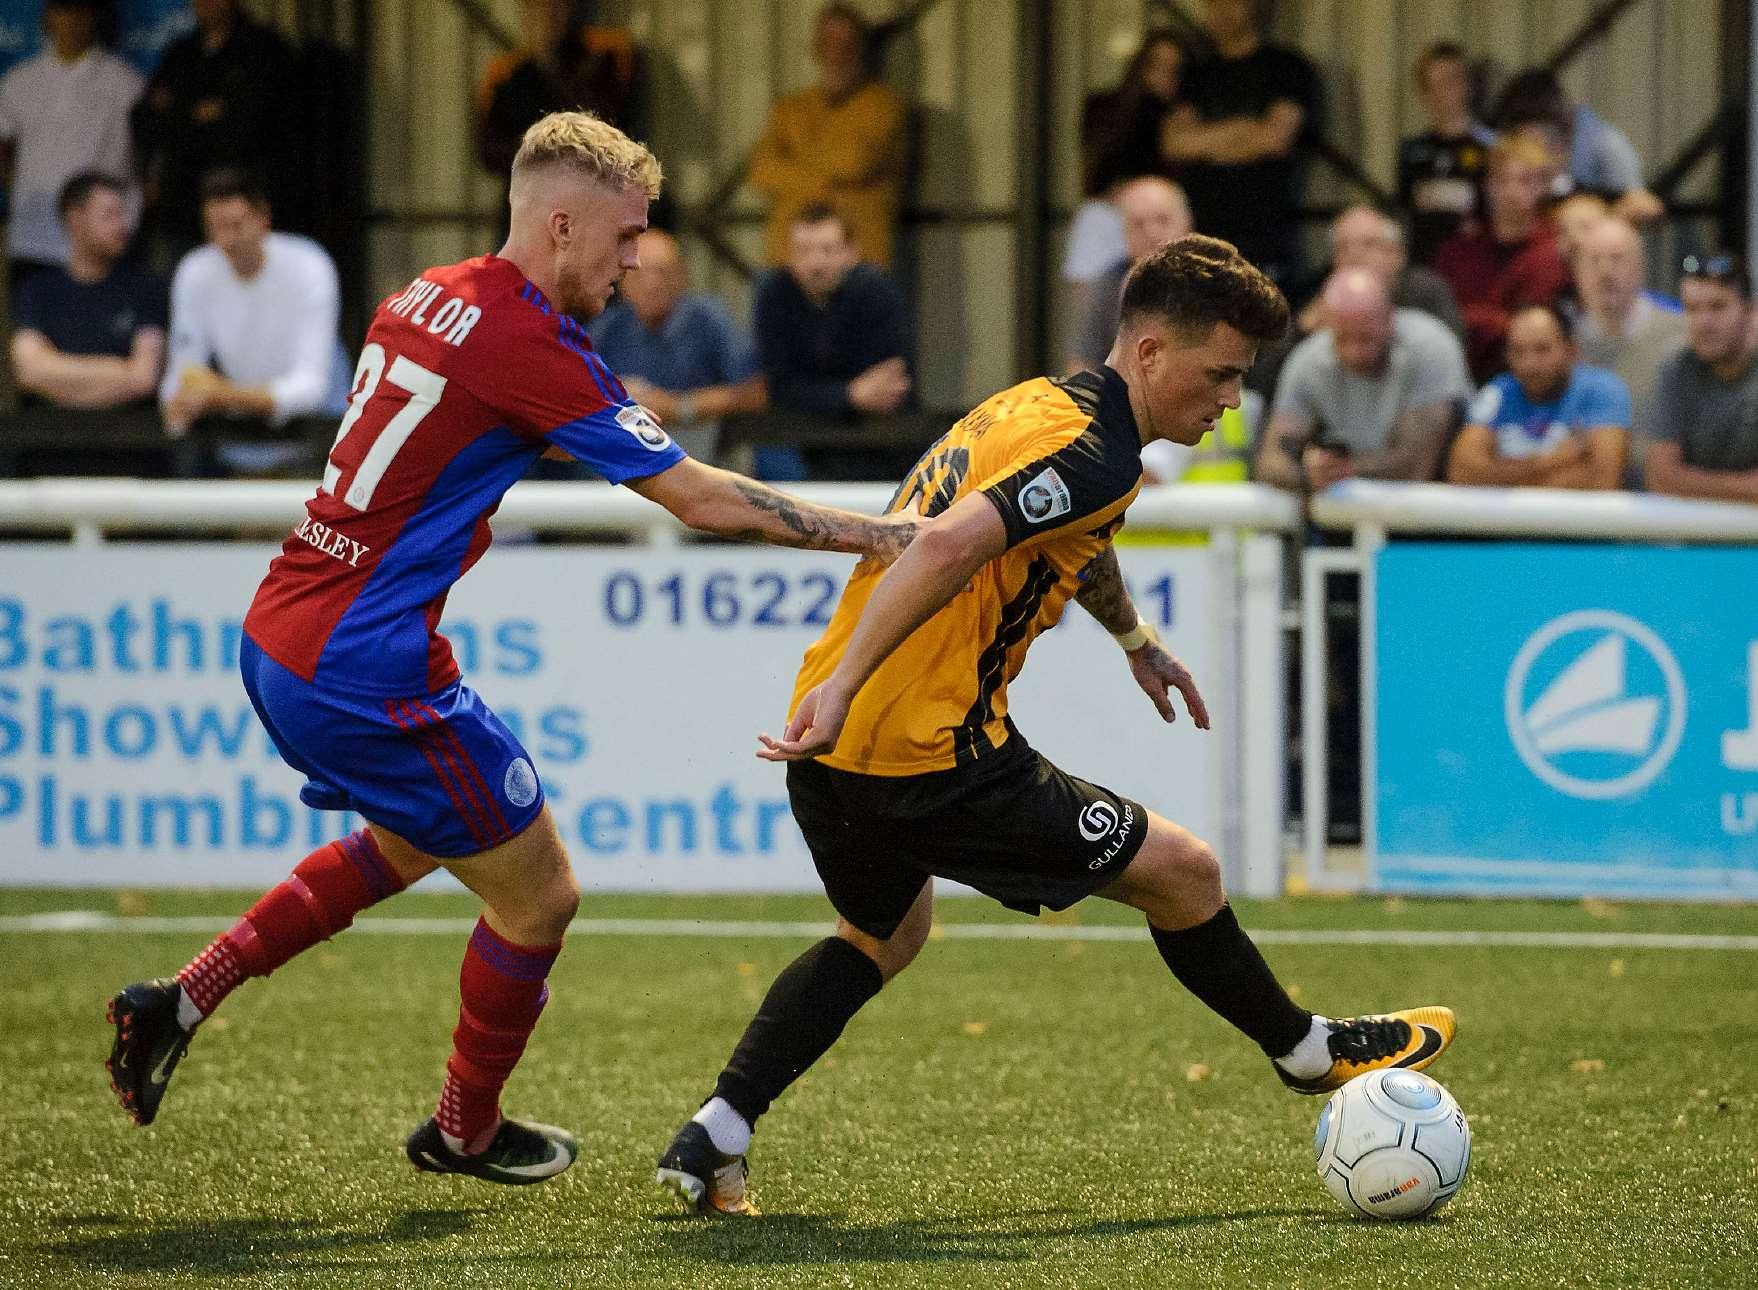 Jack Paxman goes up against former Maidstone team-mate Bobby-Joe Taylor Picture: Andy Payton